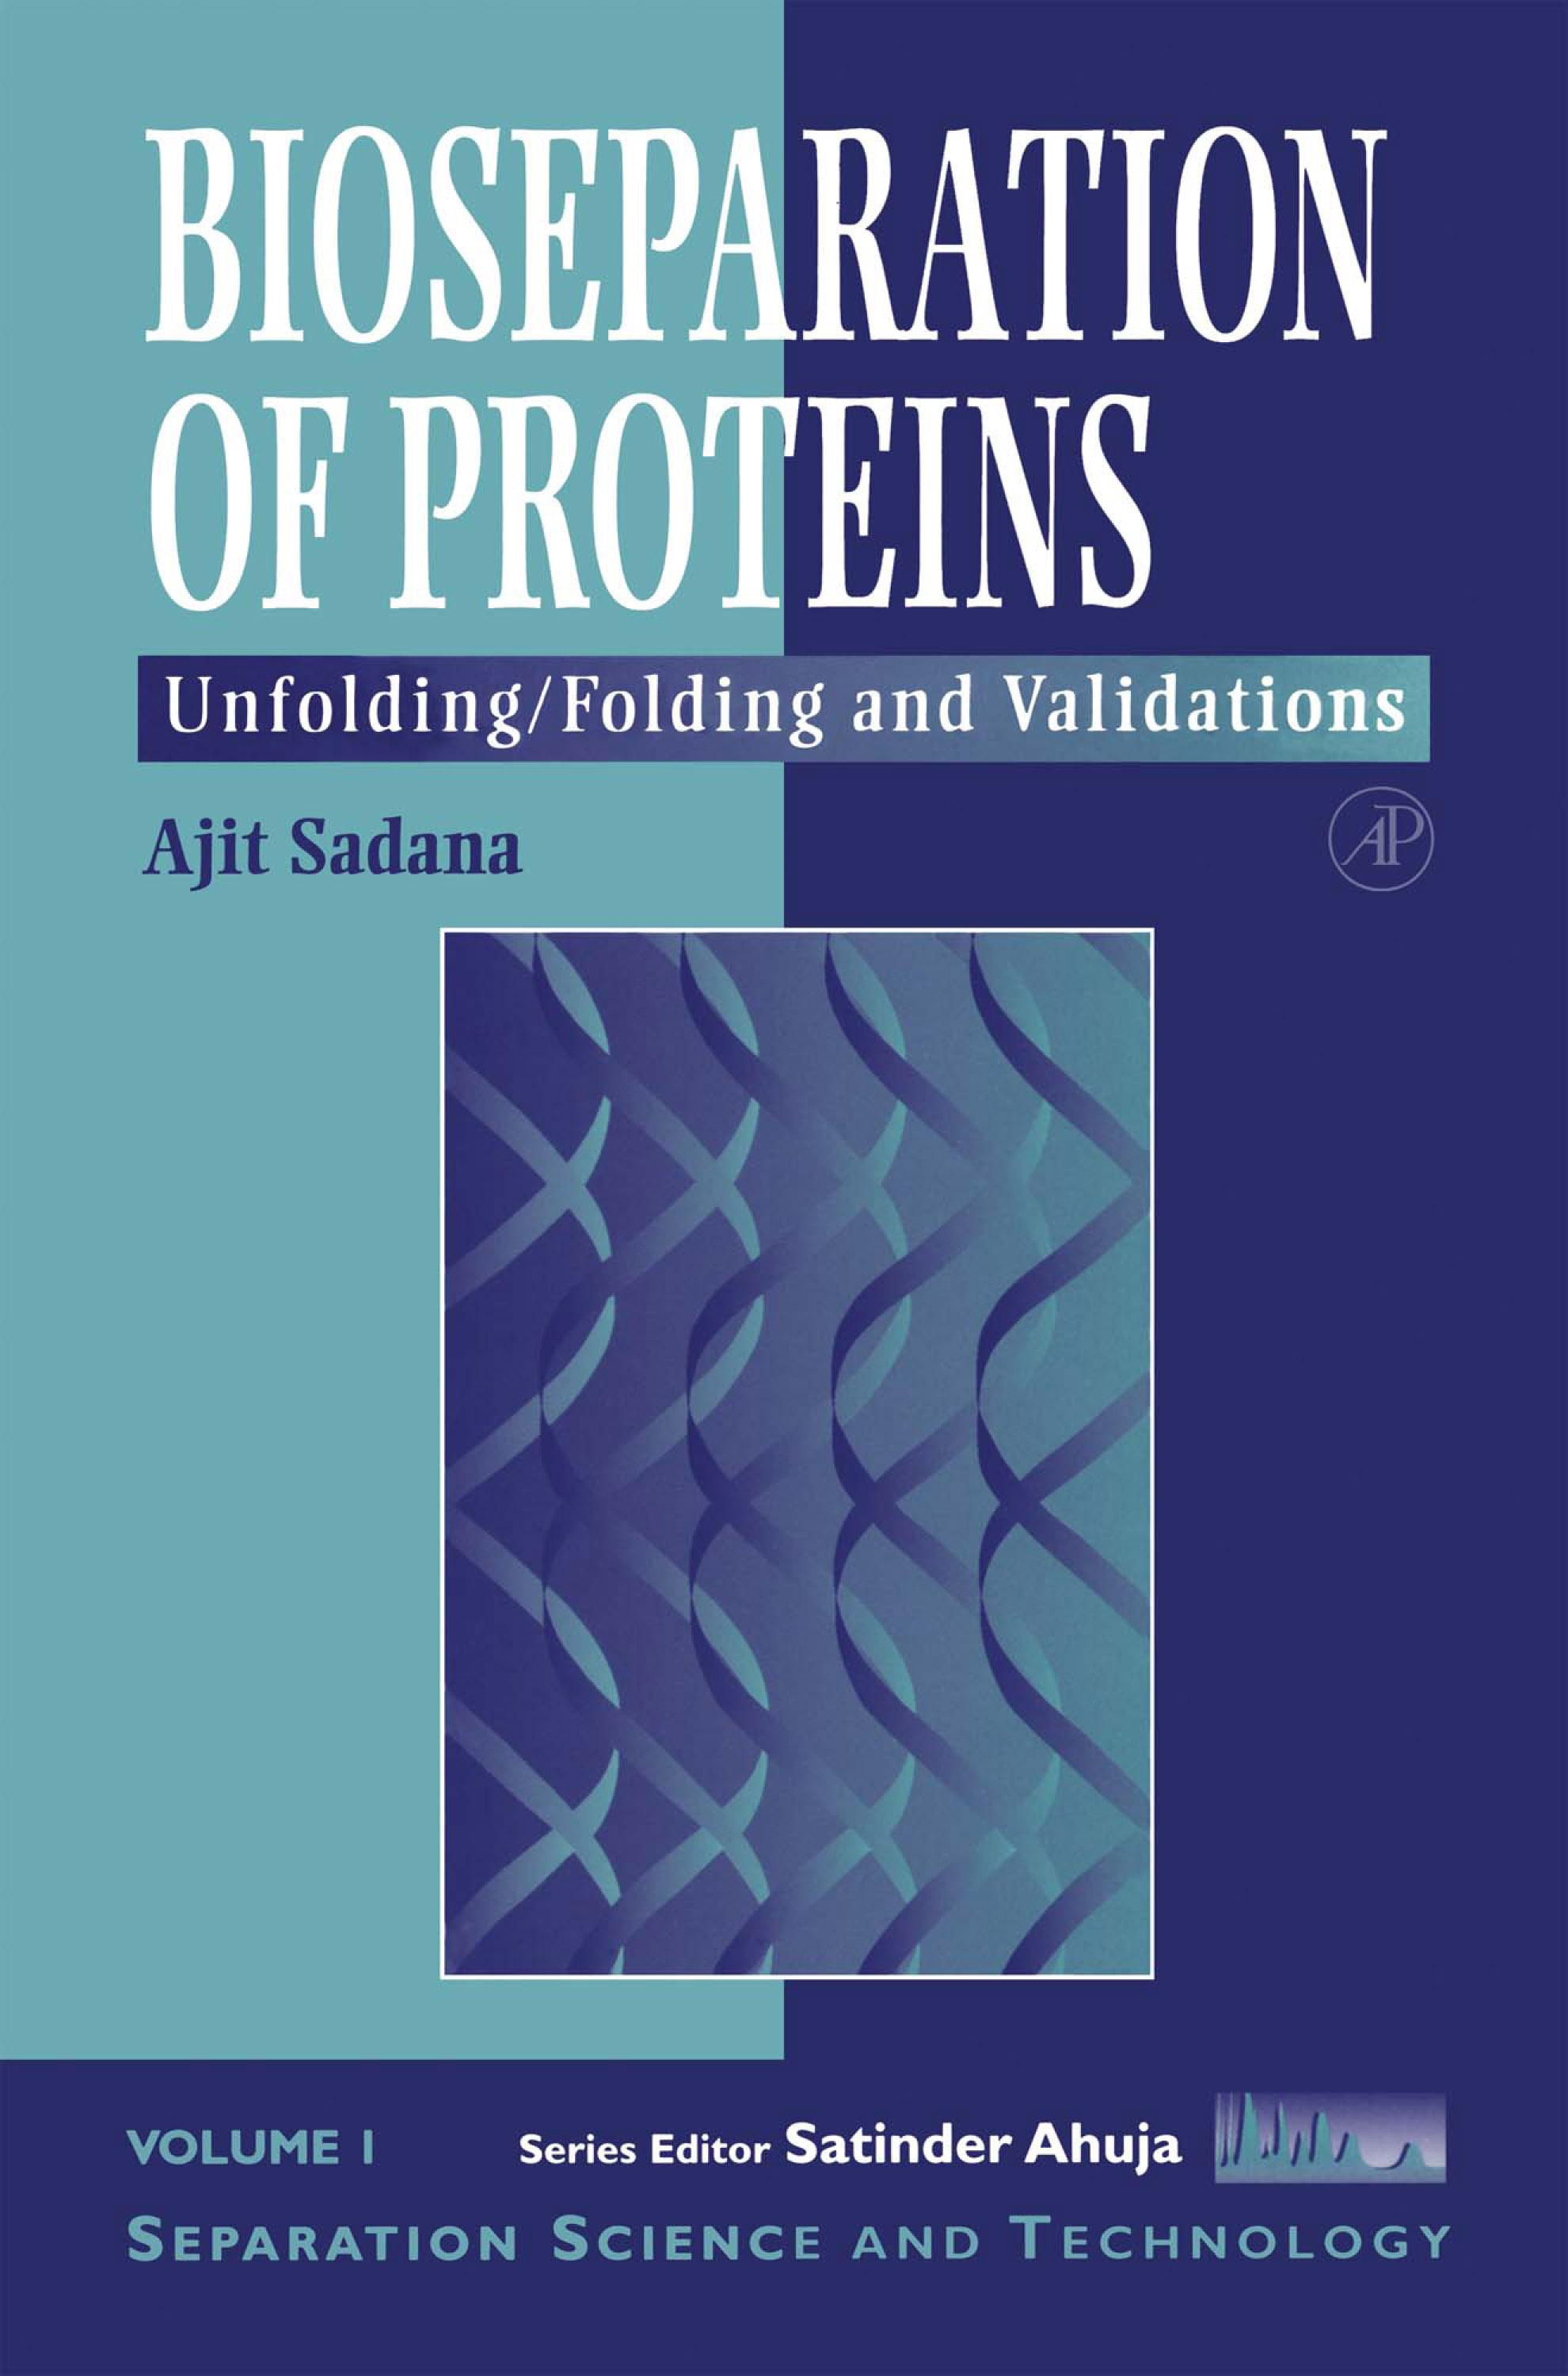 Bioseparations of Proteins: Unfolding/Folding and Validations